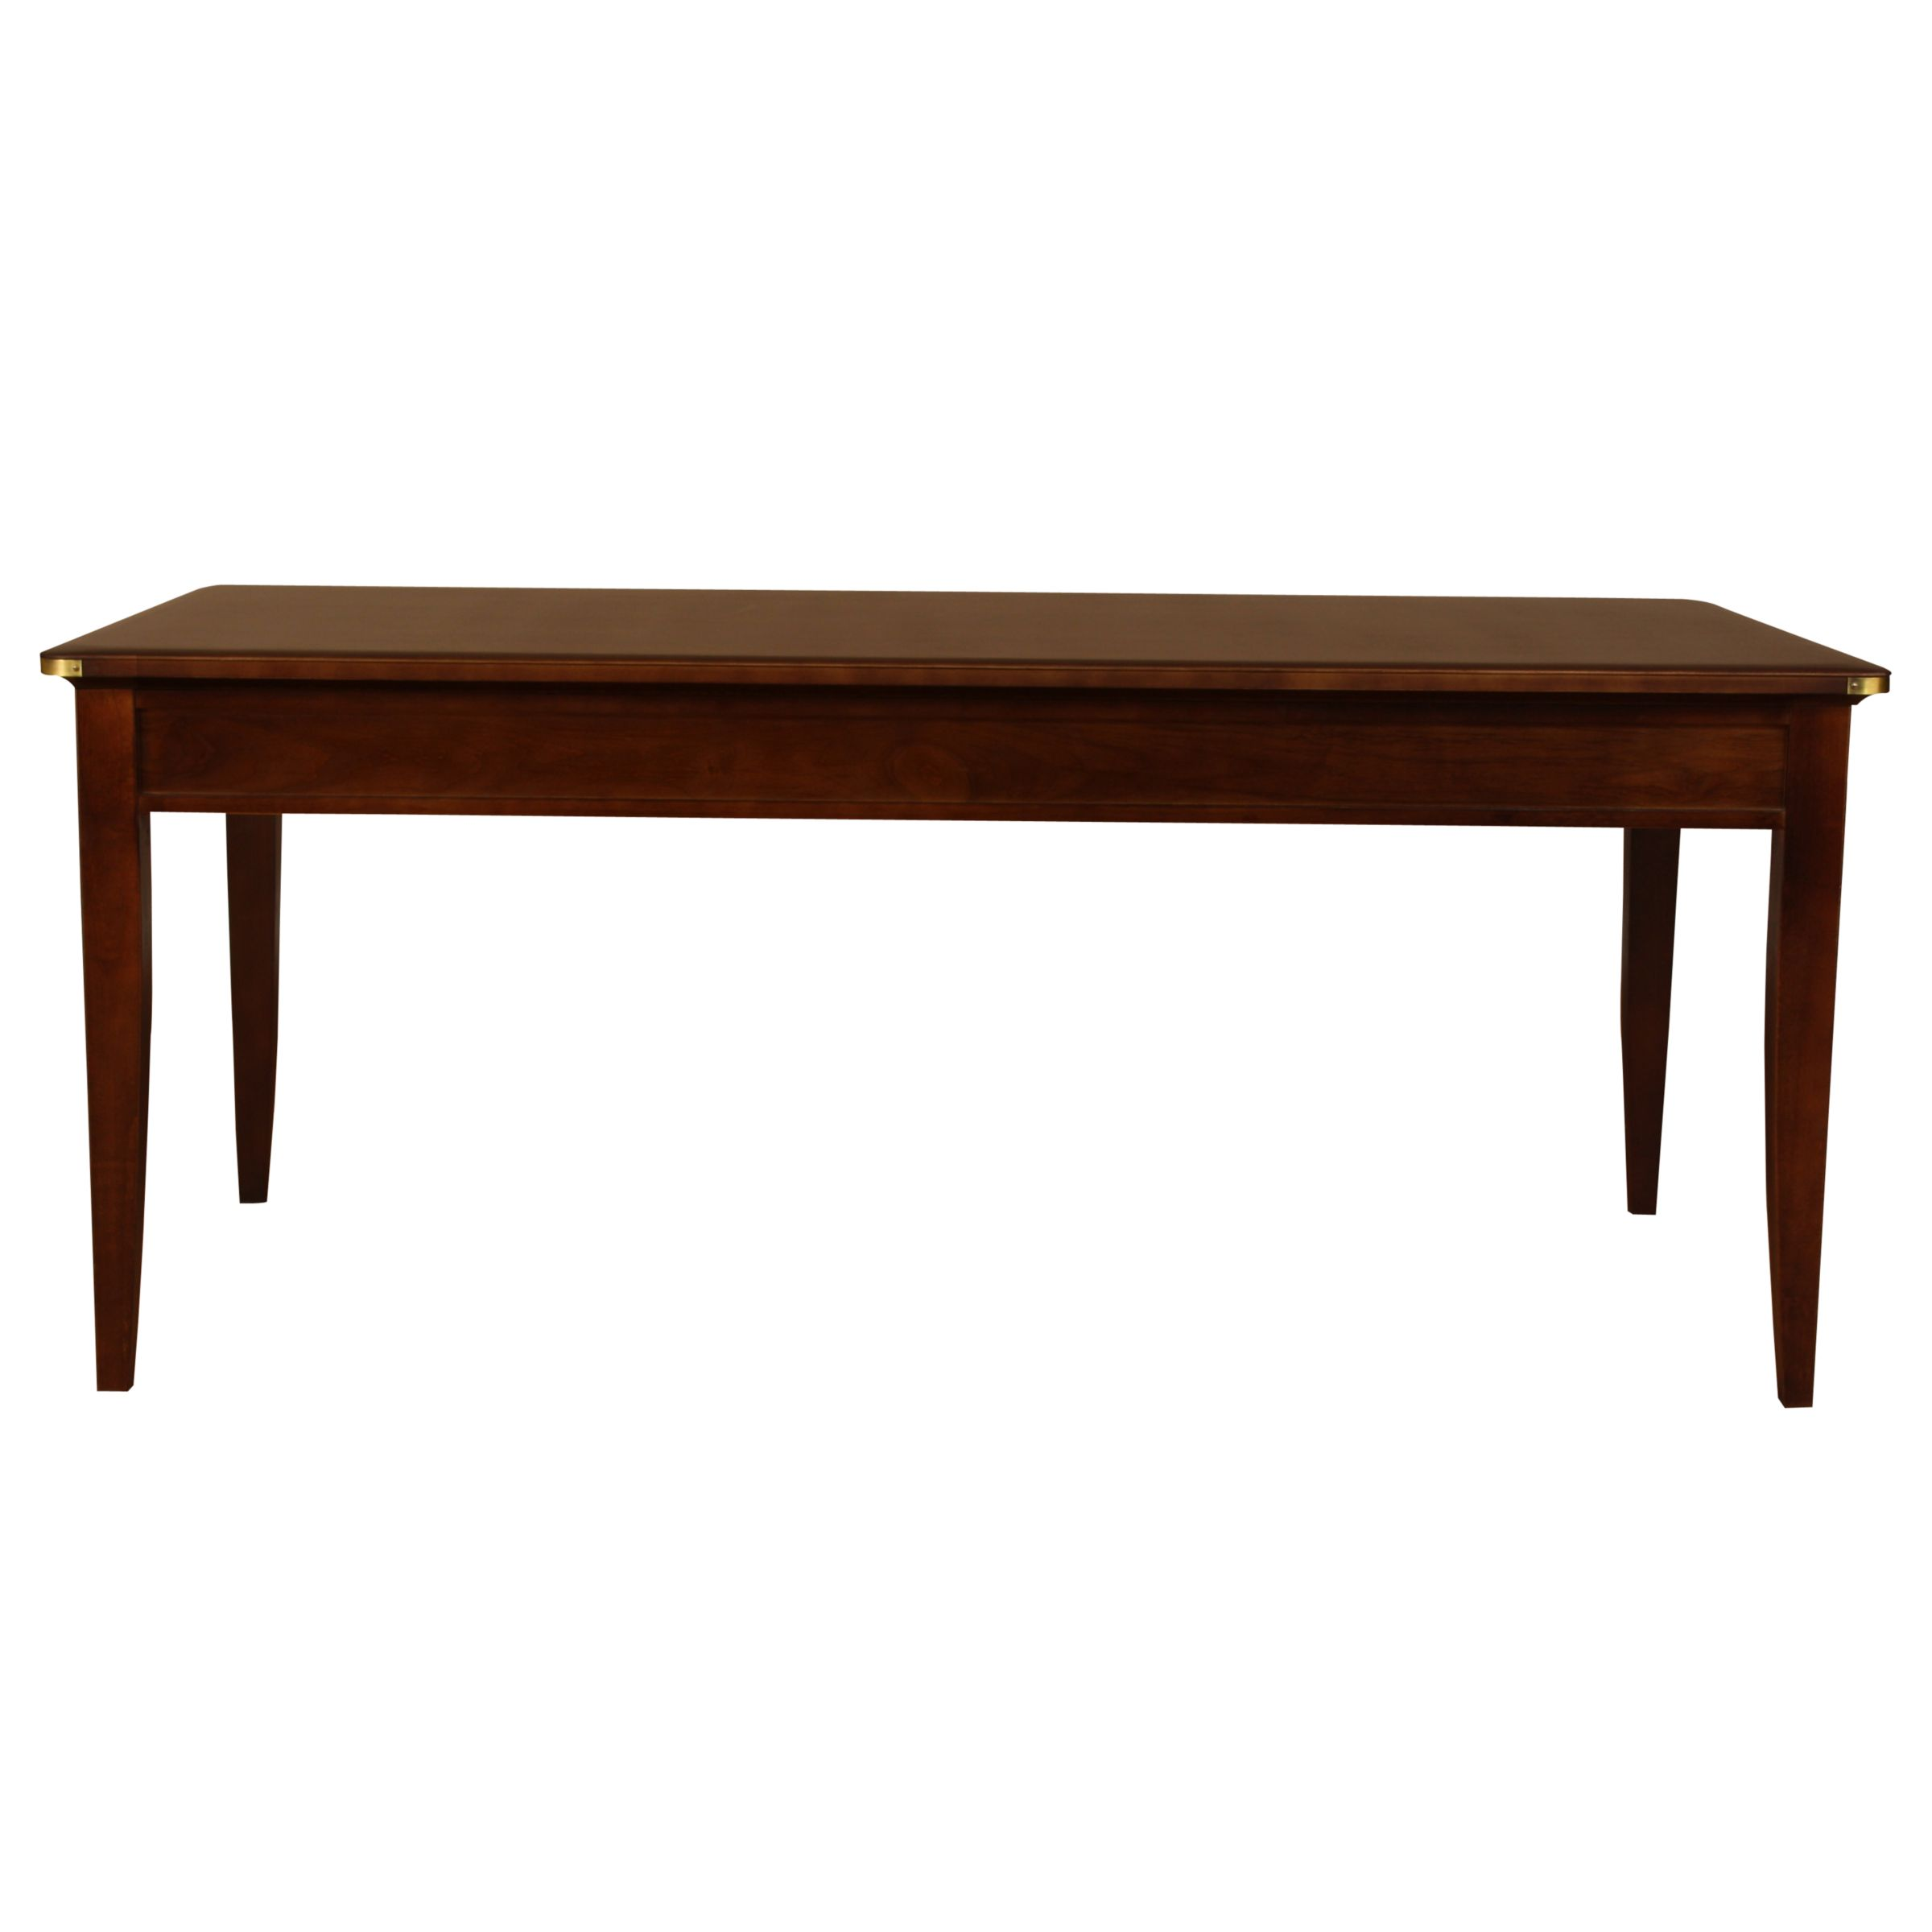 john lewis dining furniture reviews : 231094447 from www.comparestoreprices.co.uk size 2400 x 2400 jpeg 90kB